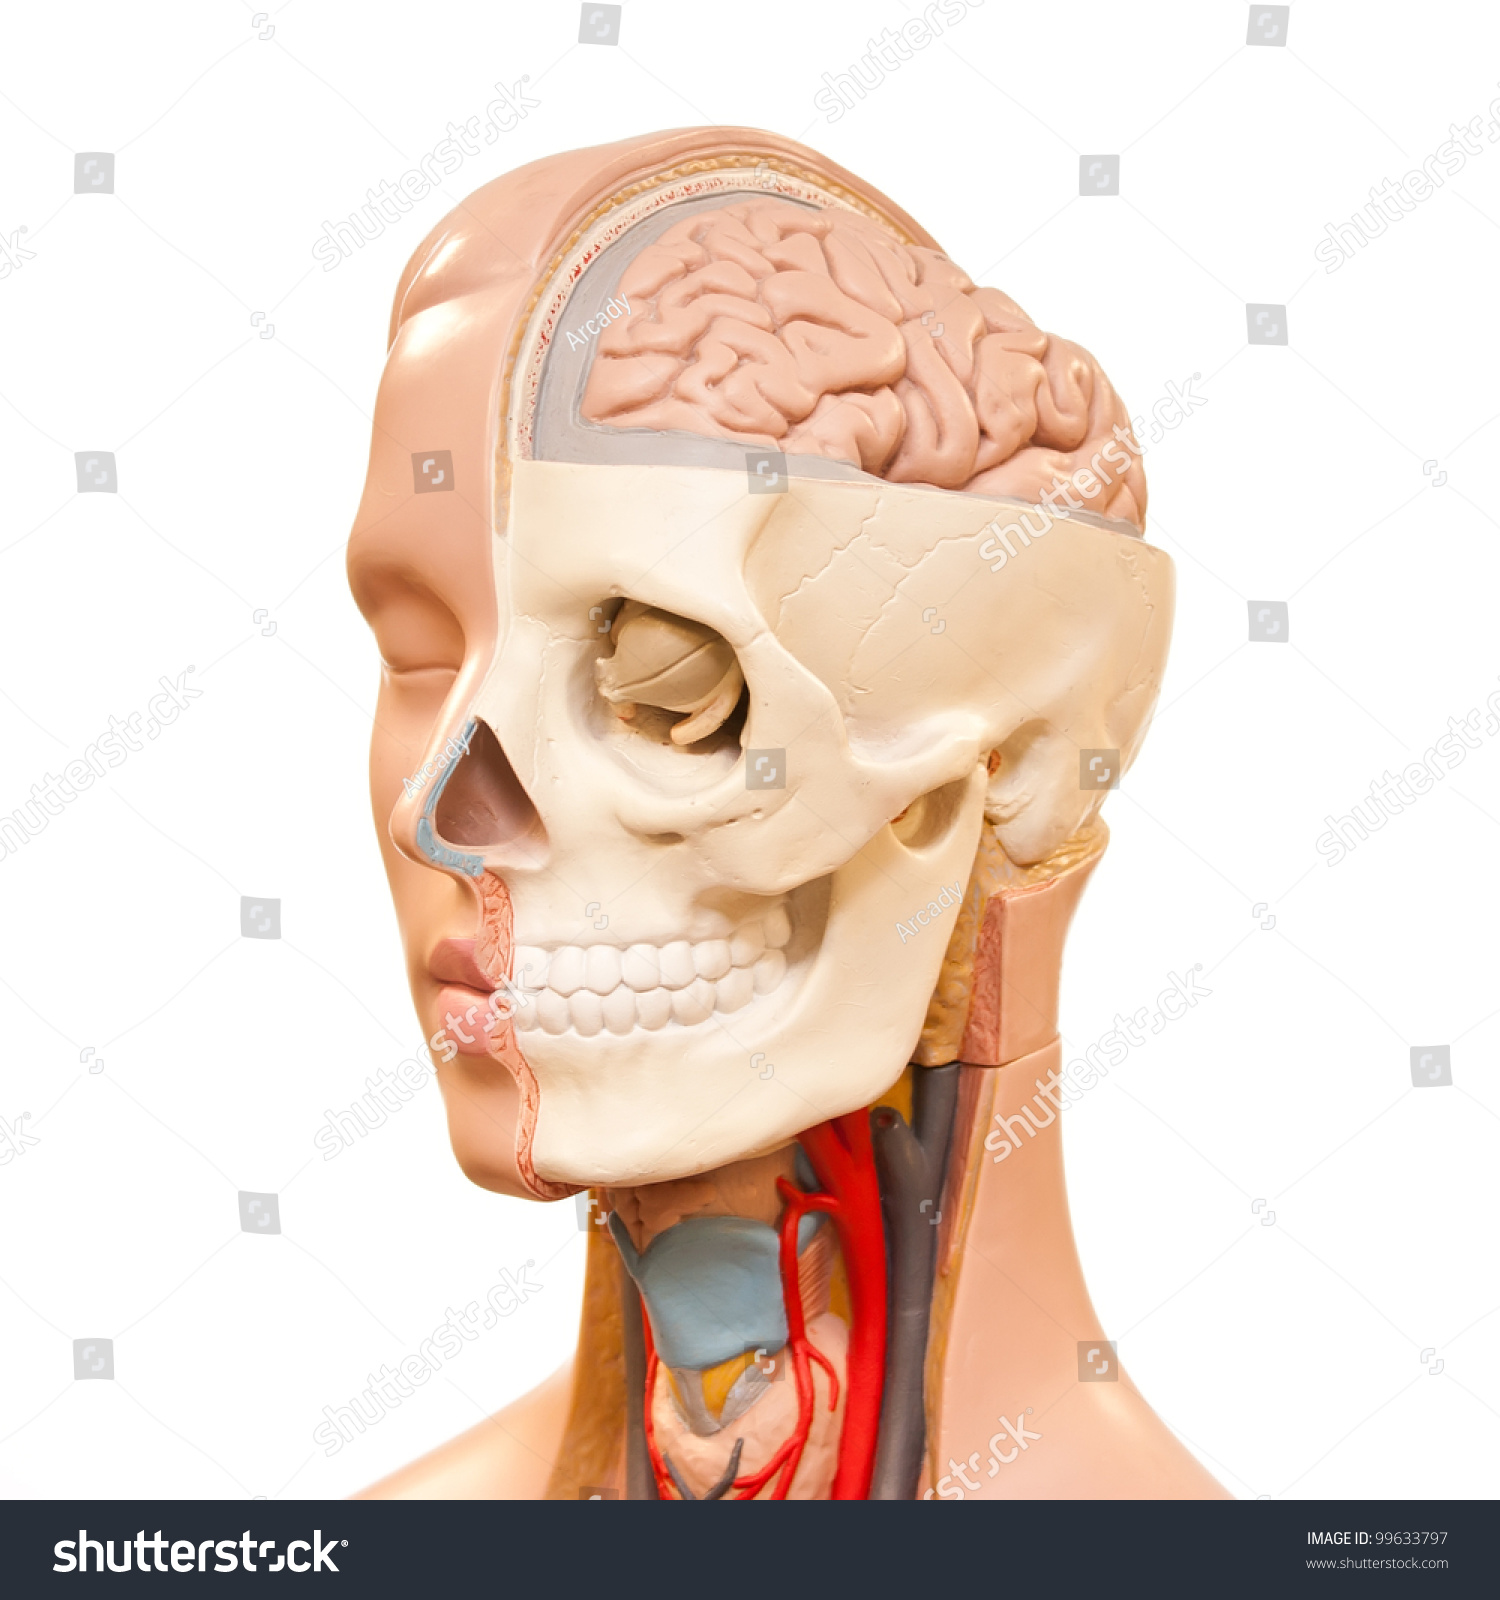 Human Head Anatomy Picture Stock Photo Edit Now 99633797